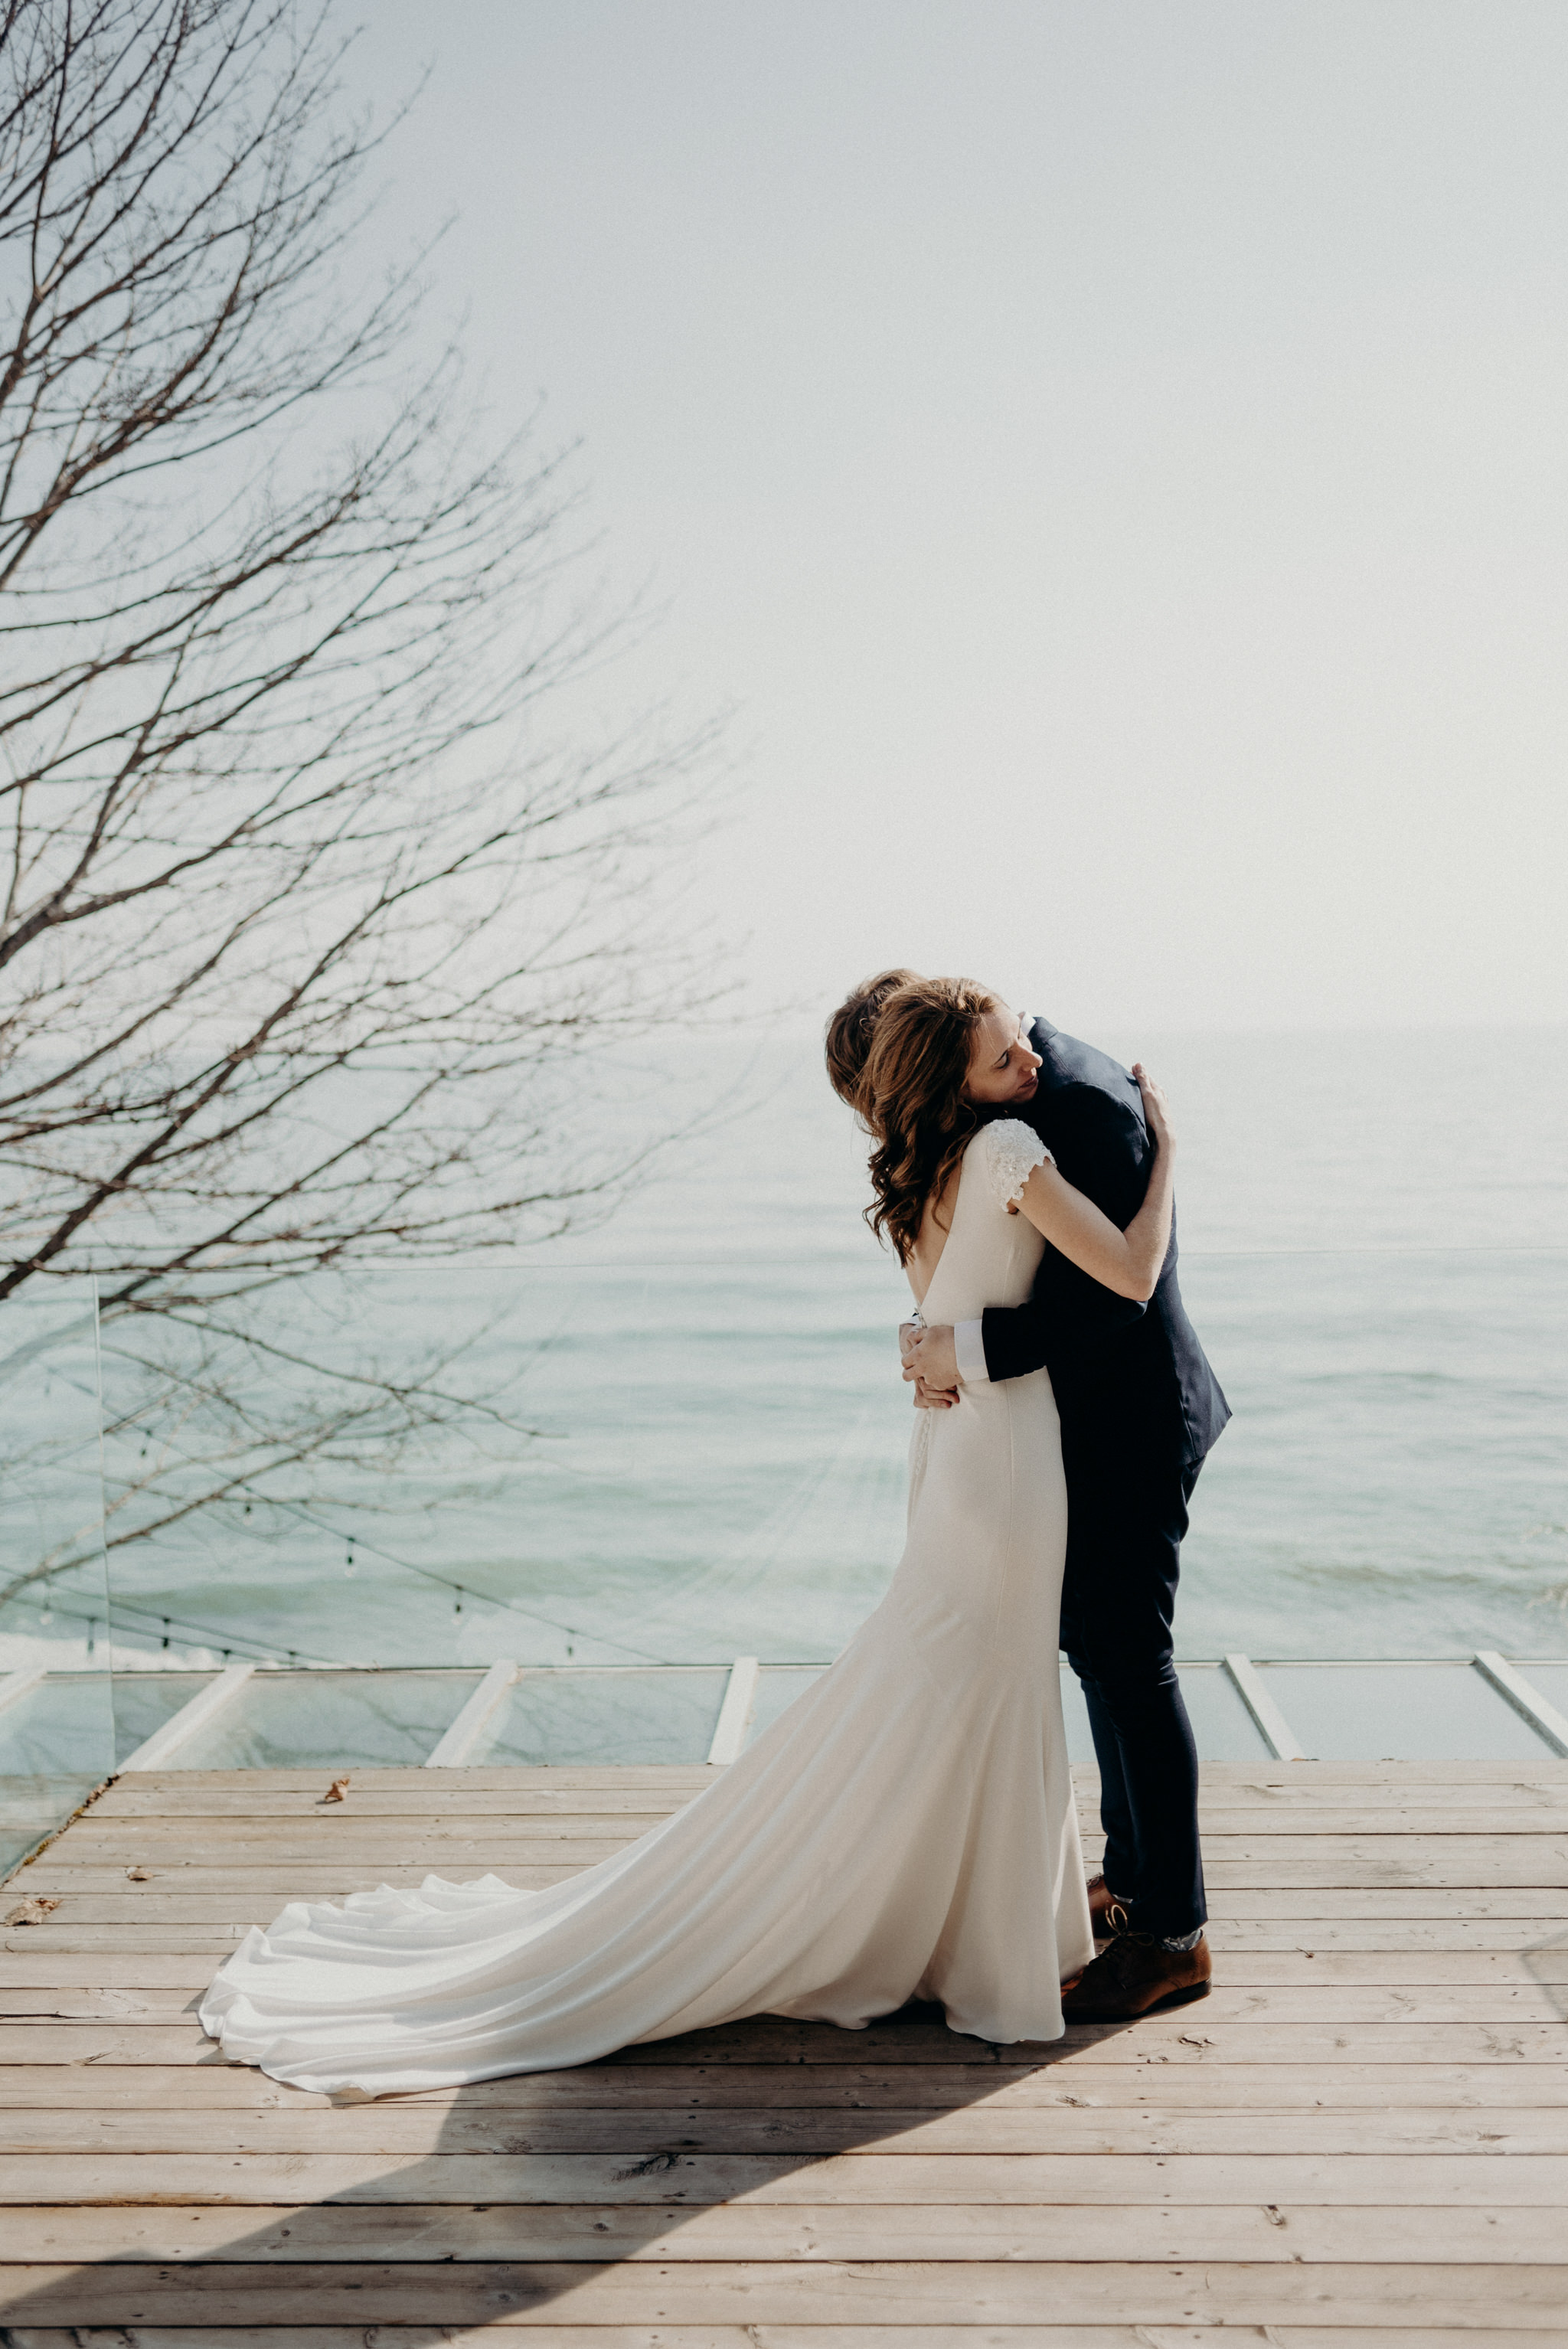 wedding ceremony on patio overlooking Lake Ontario at Drake Devonshire